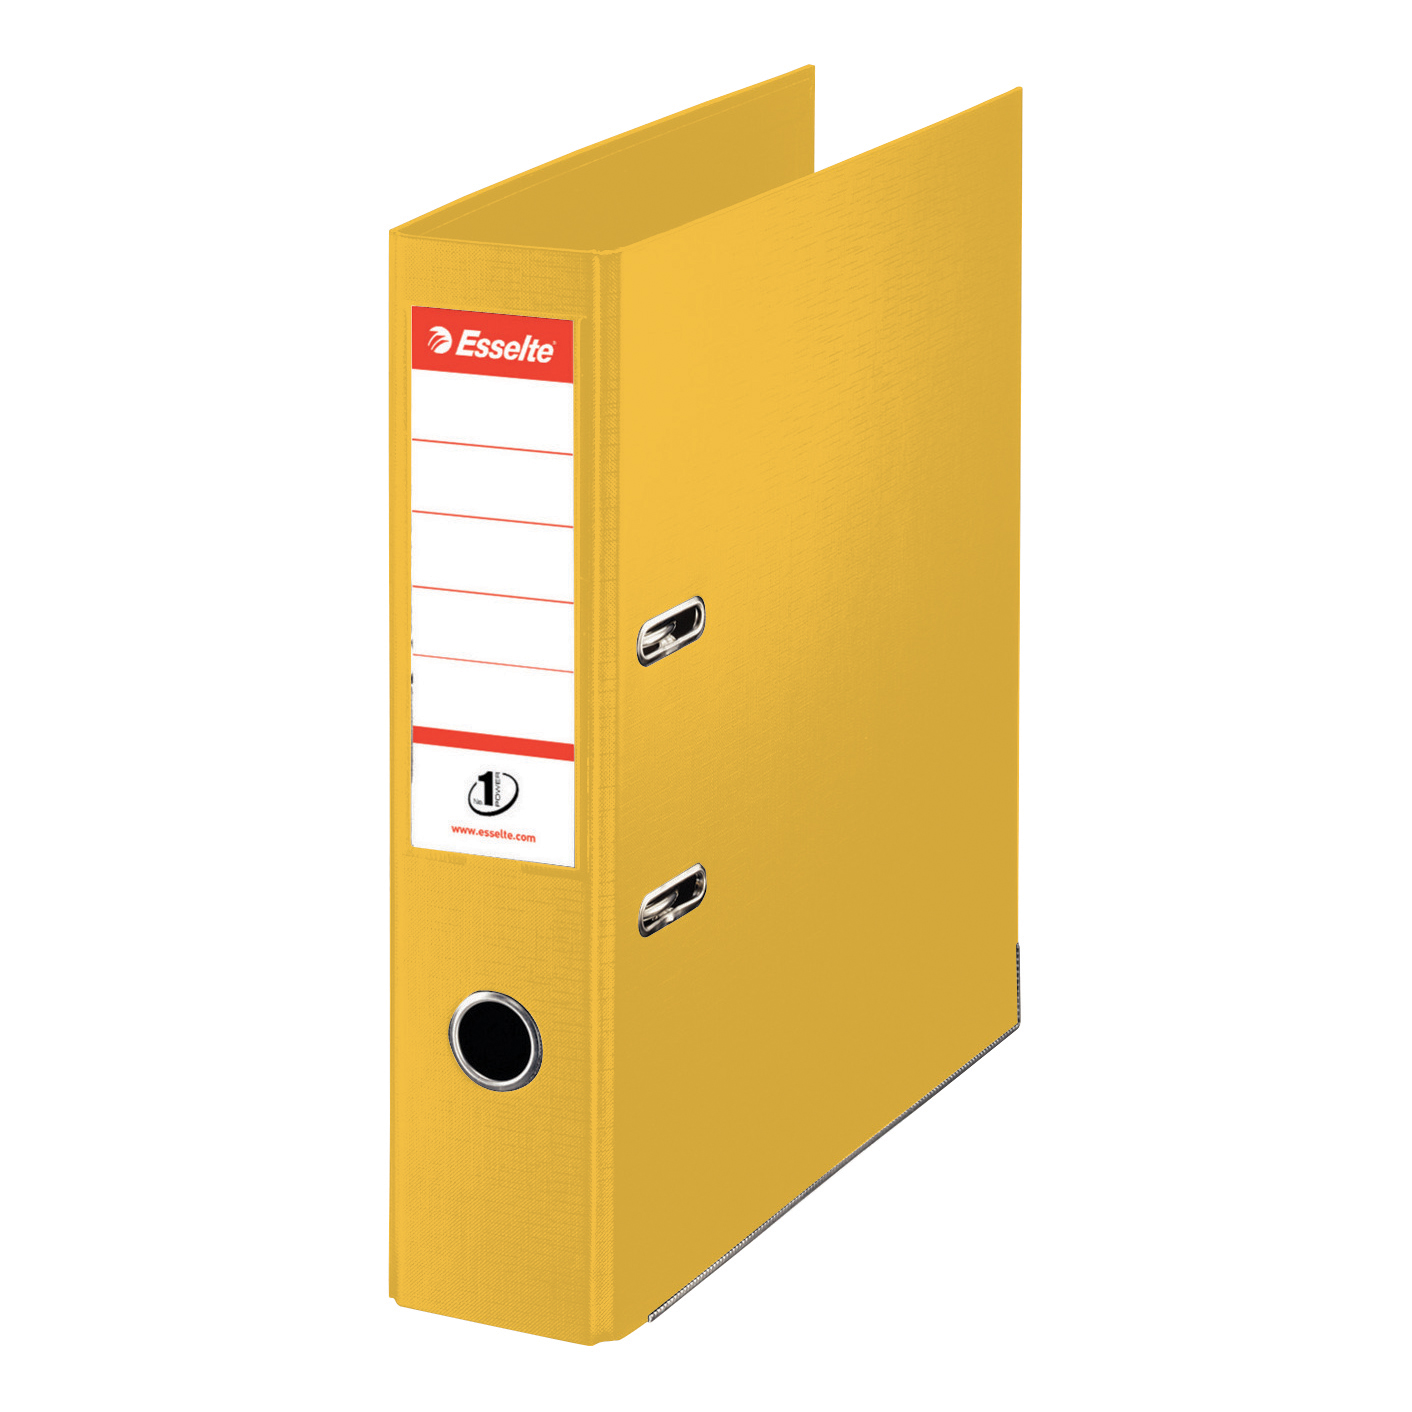 Esselte No. 1 Power Mini Lever Arch File PP Slotted 50mm Spine A4 Yellow Ref 811410 [Pack 10]